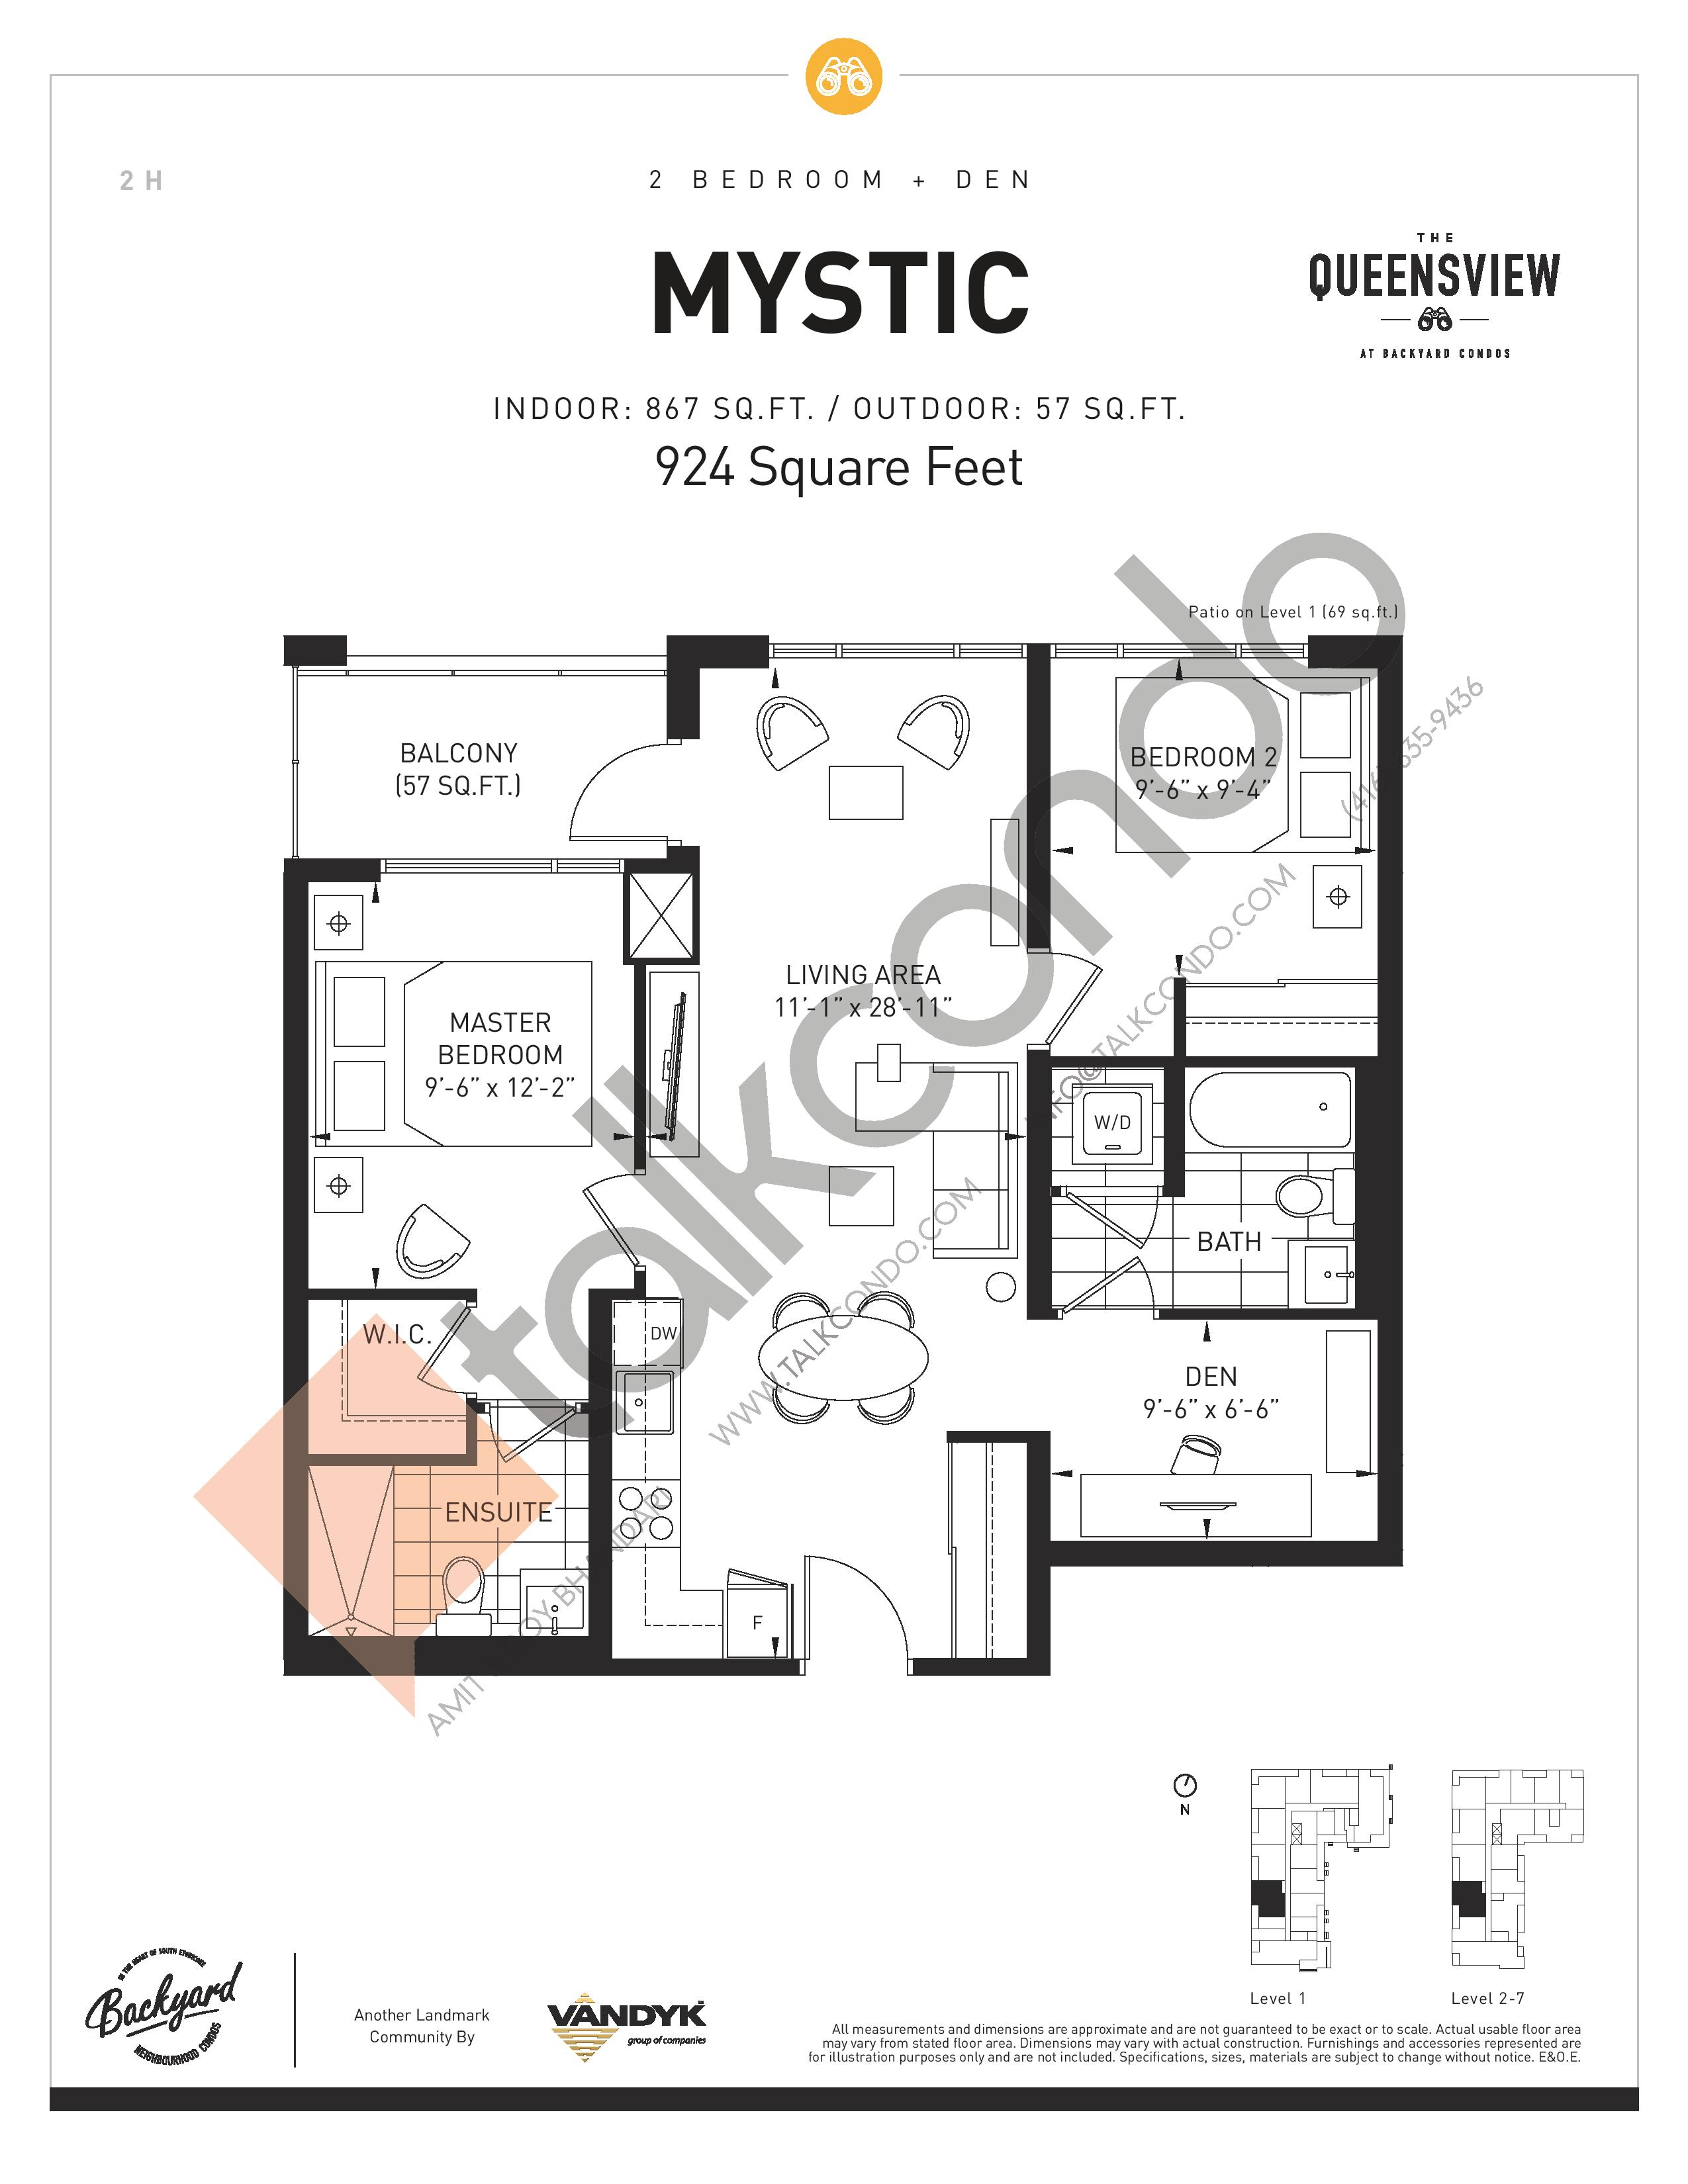 Mystic Floor Plan at The Queensview at Backyard Condos - 867 sq.ft